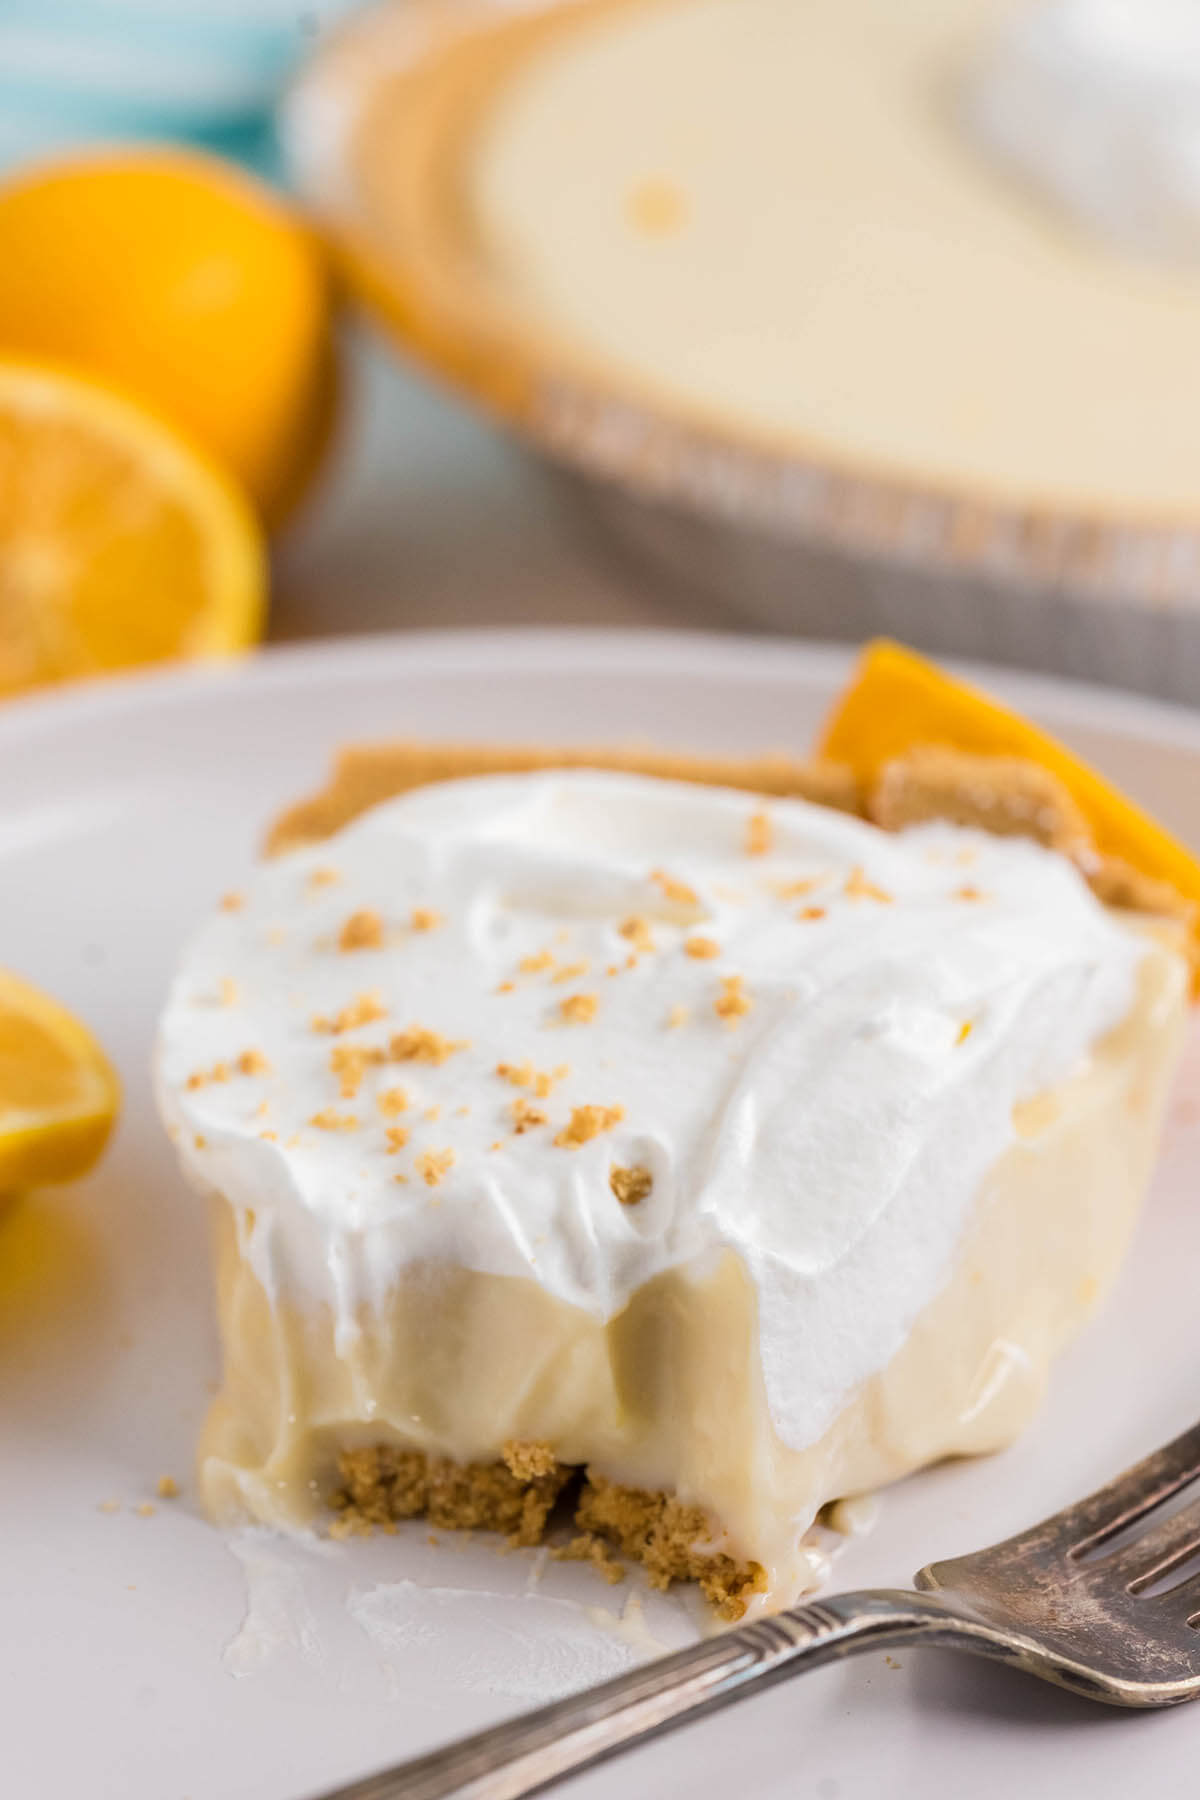 A close up photo of a slice of lemon icebox pie with bite taken out of it.